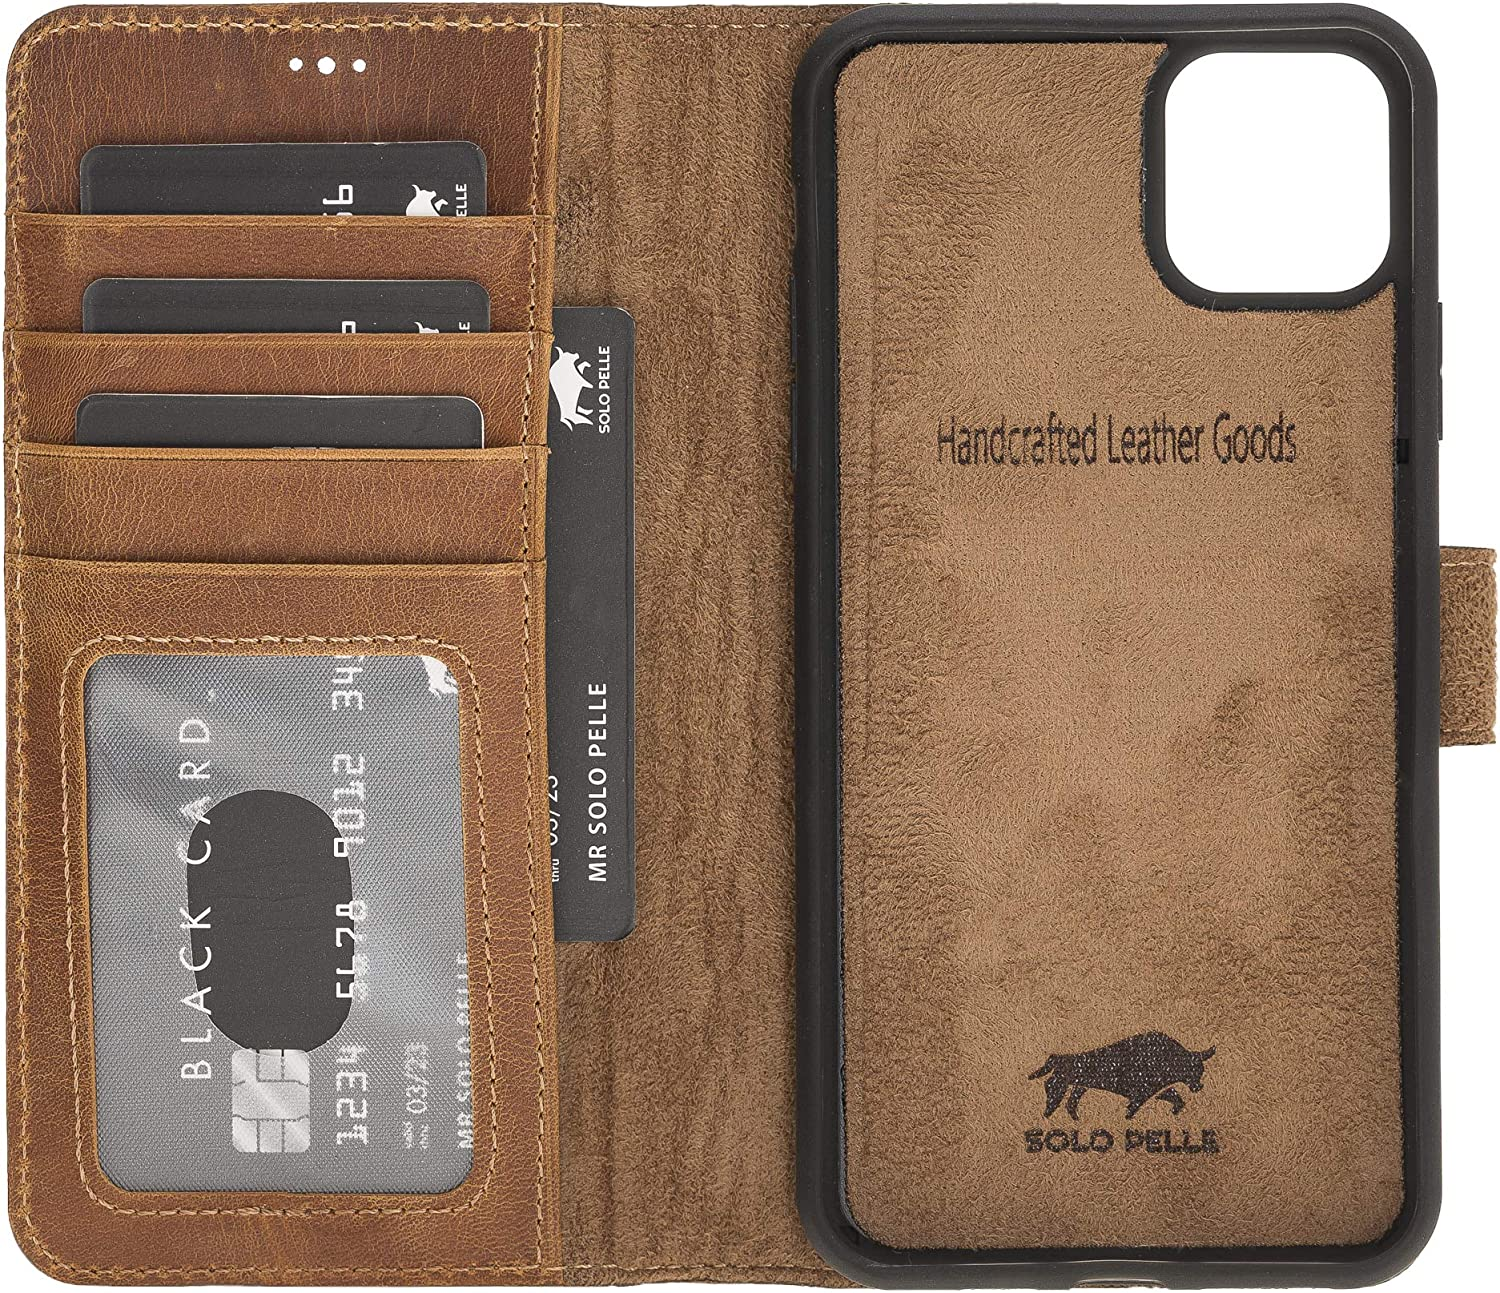 Solo Pelle Leather Case Compatible With Iphone 11 Pro Elektronik